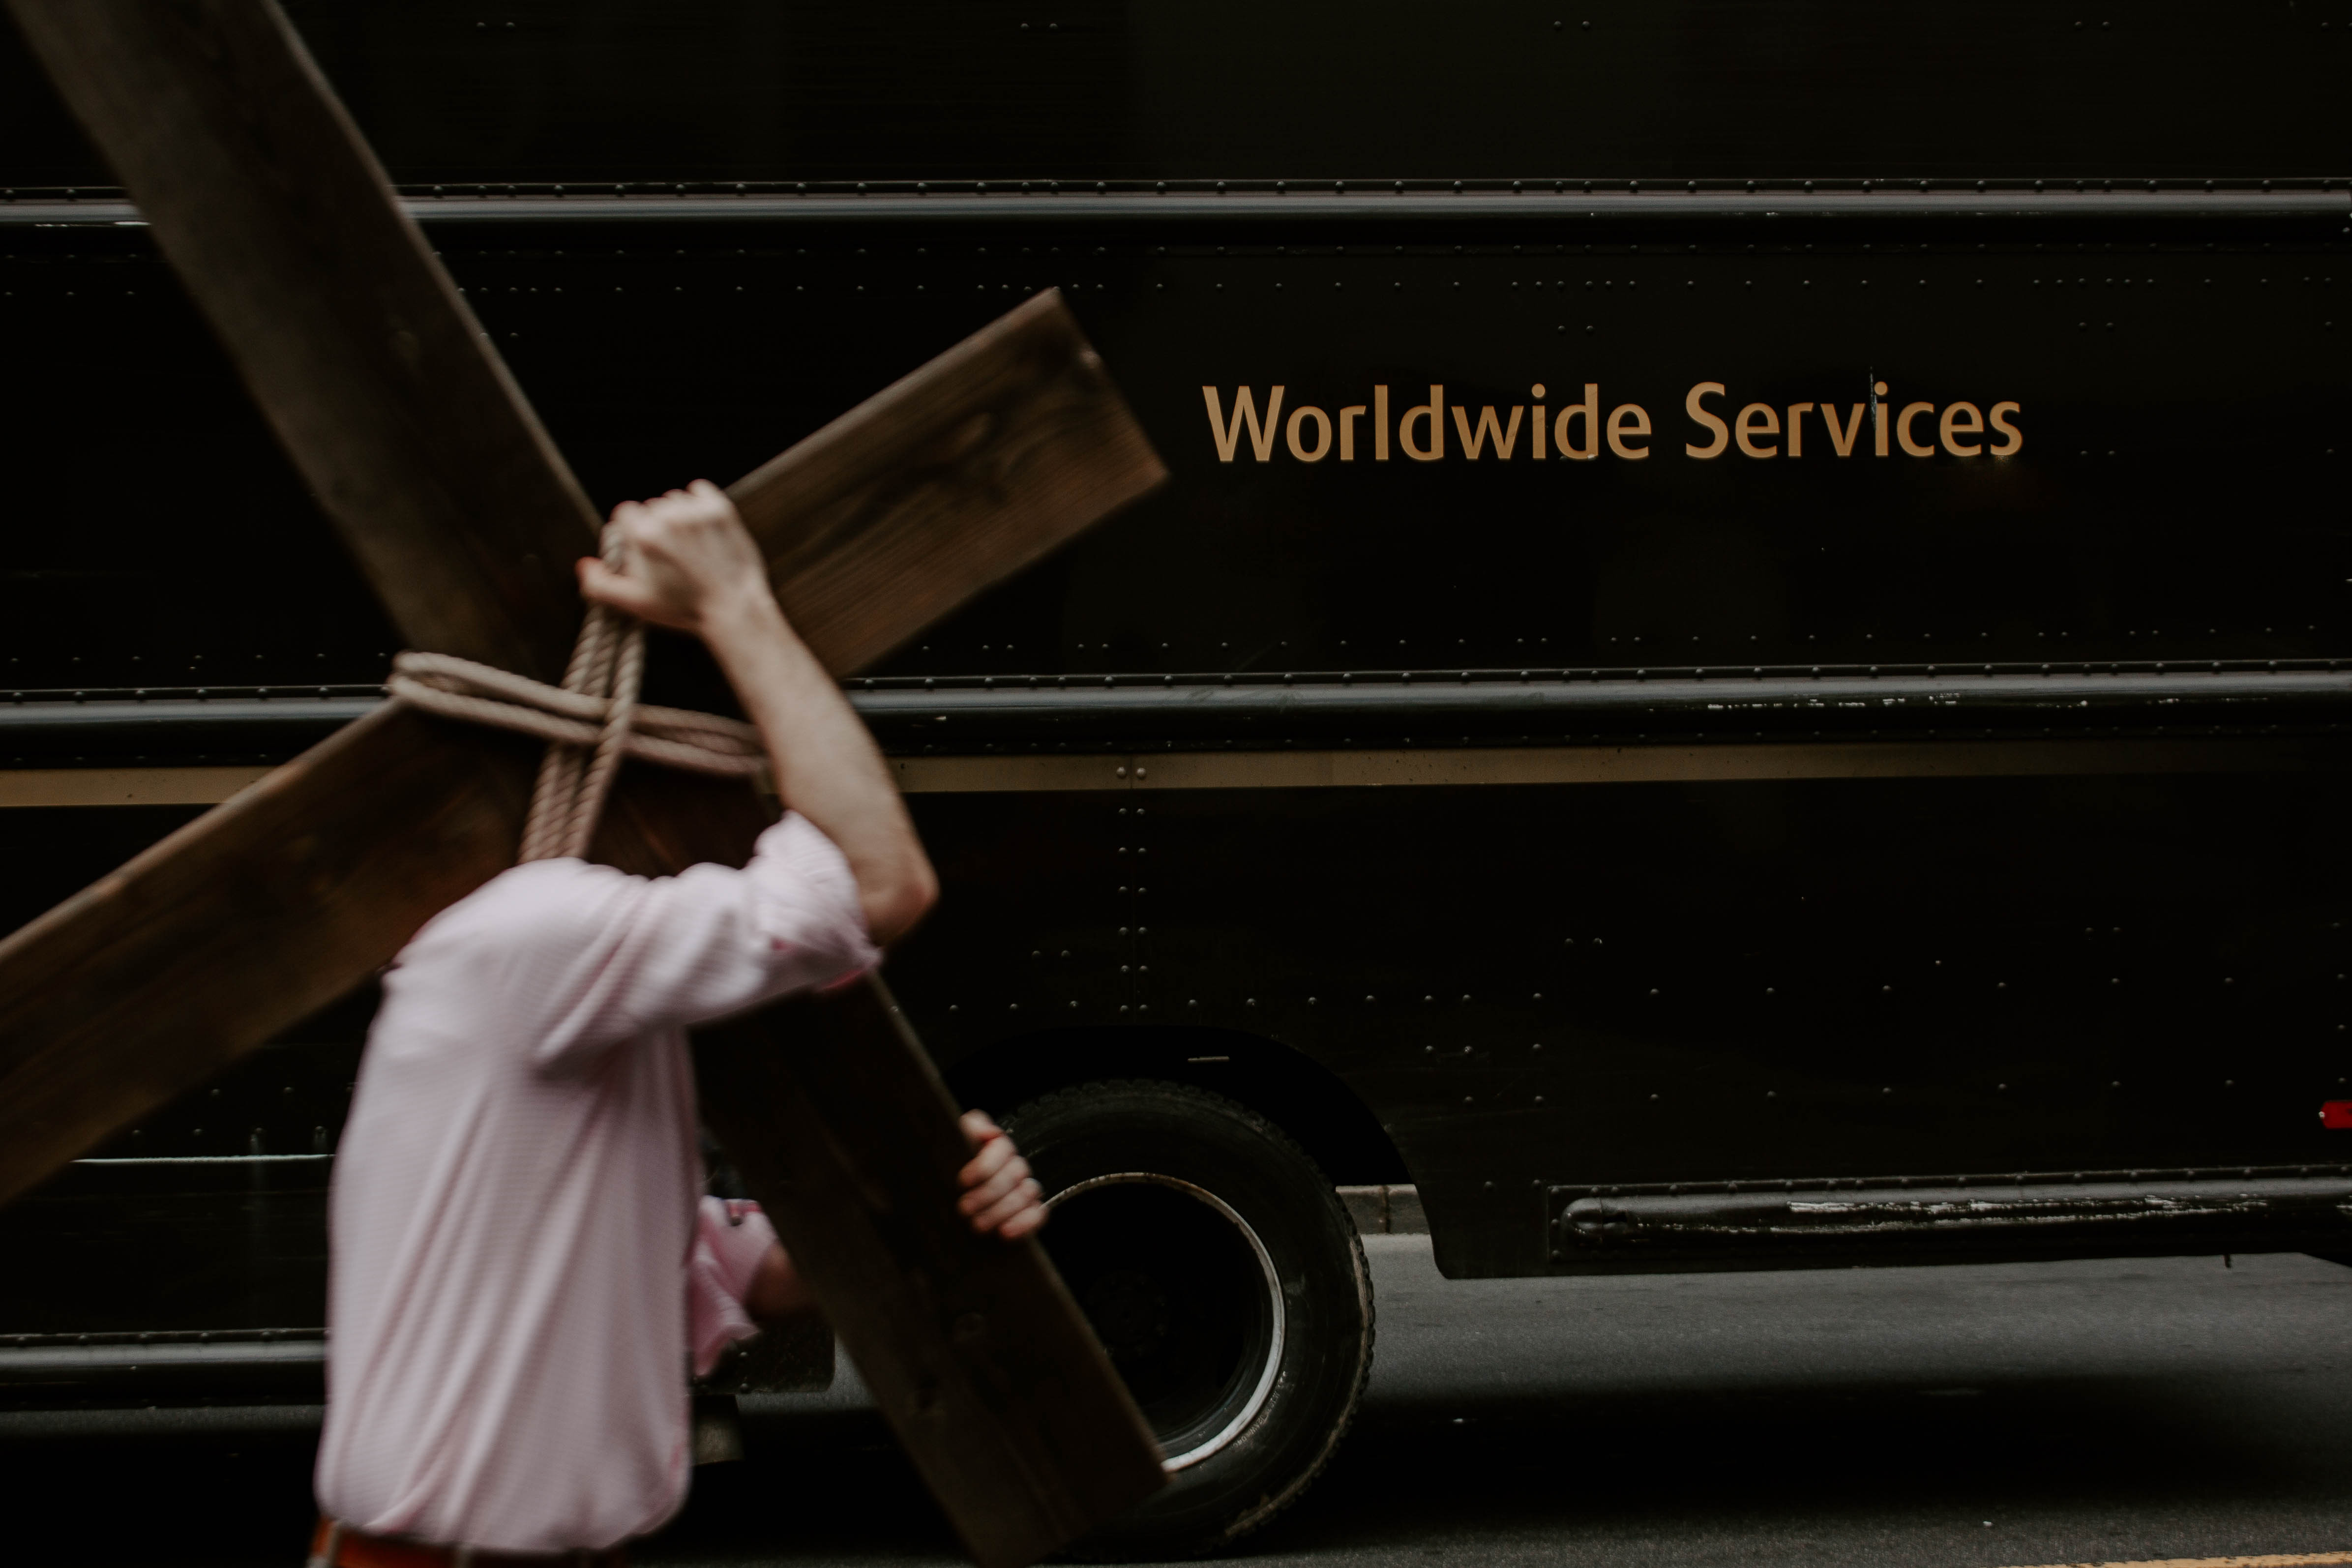 A man carries a cross in a modern city's downtown core